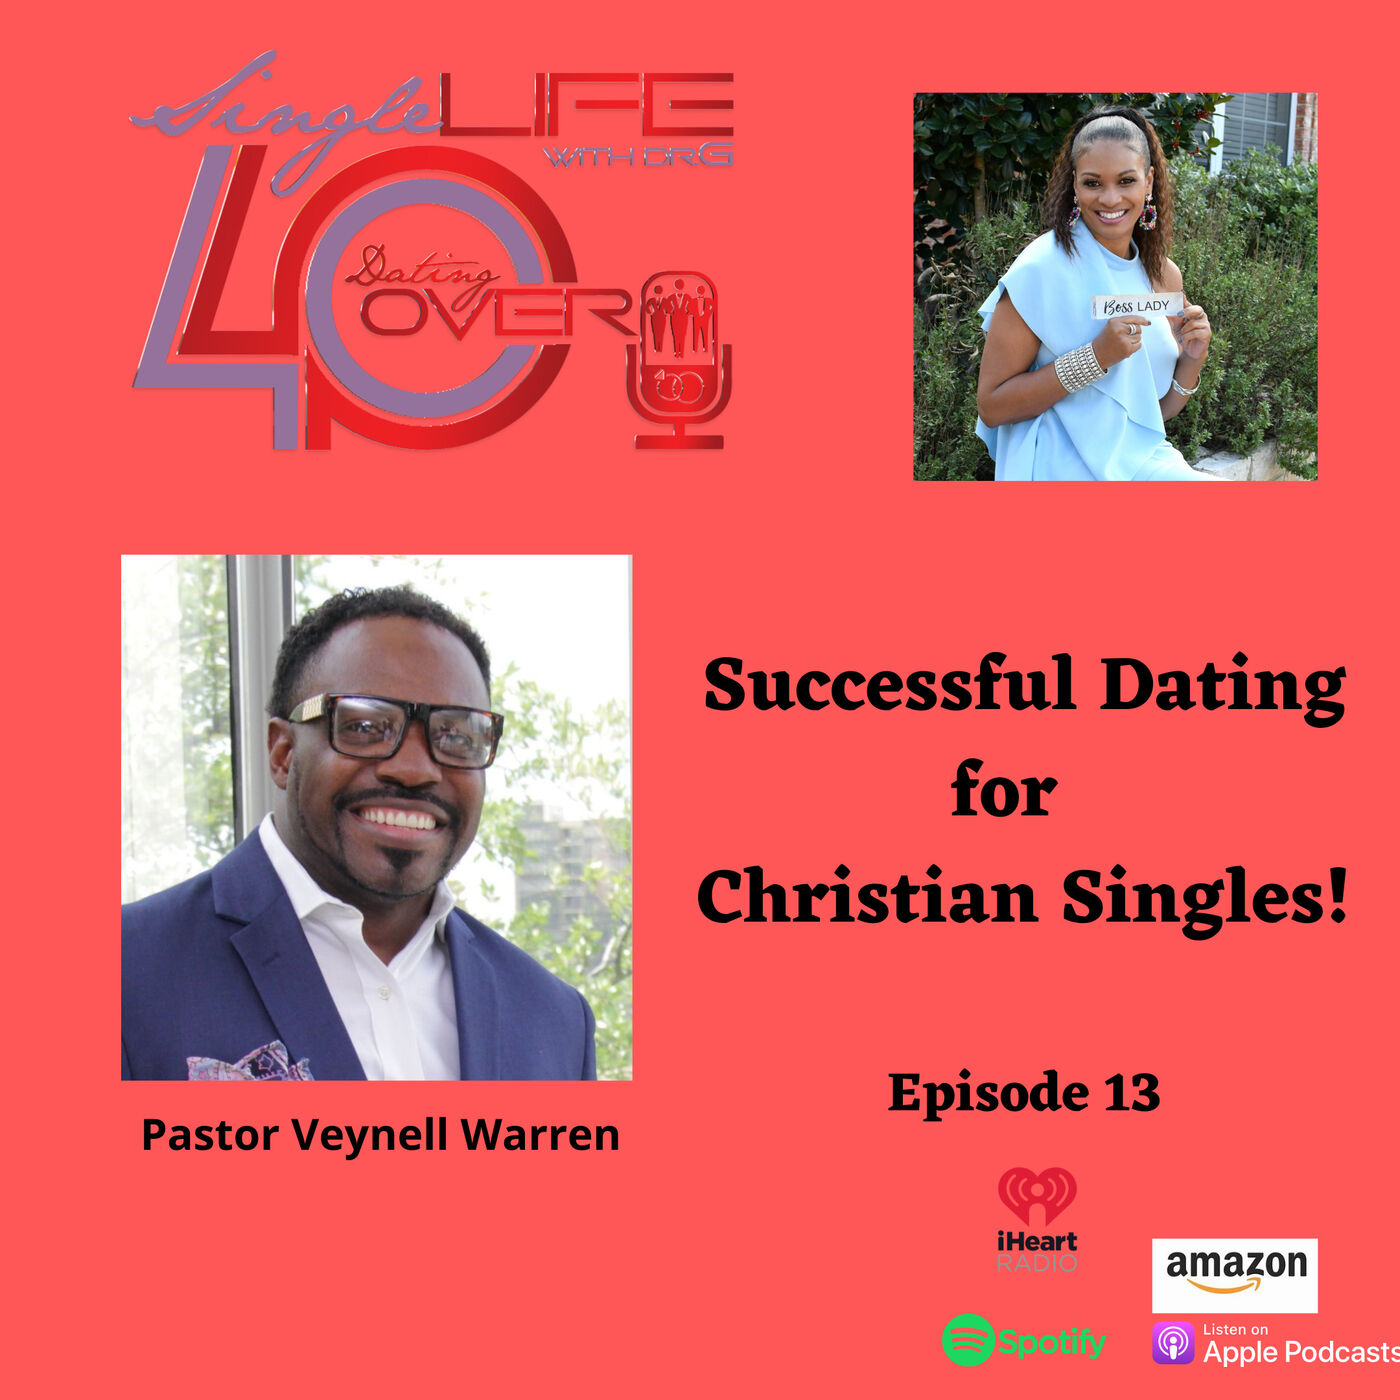 Successful Dating for Christian Singles